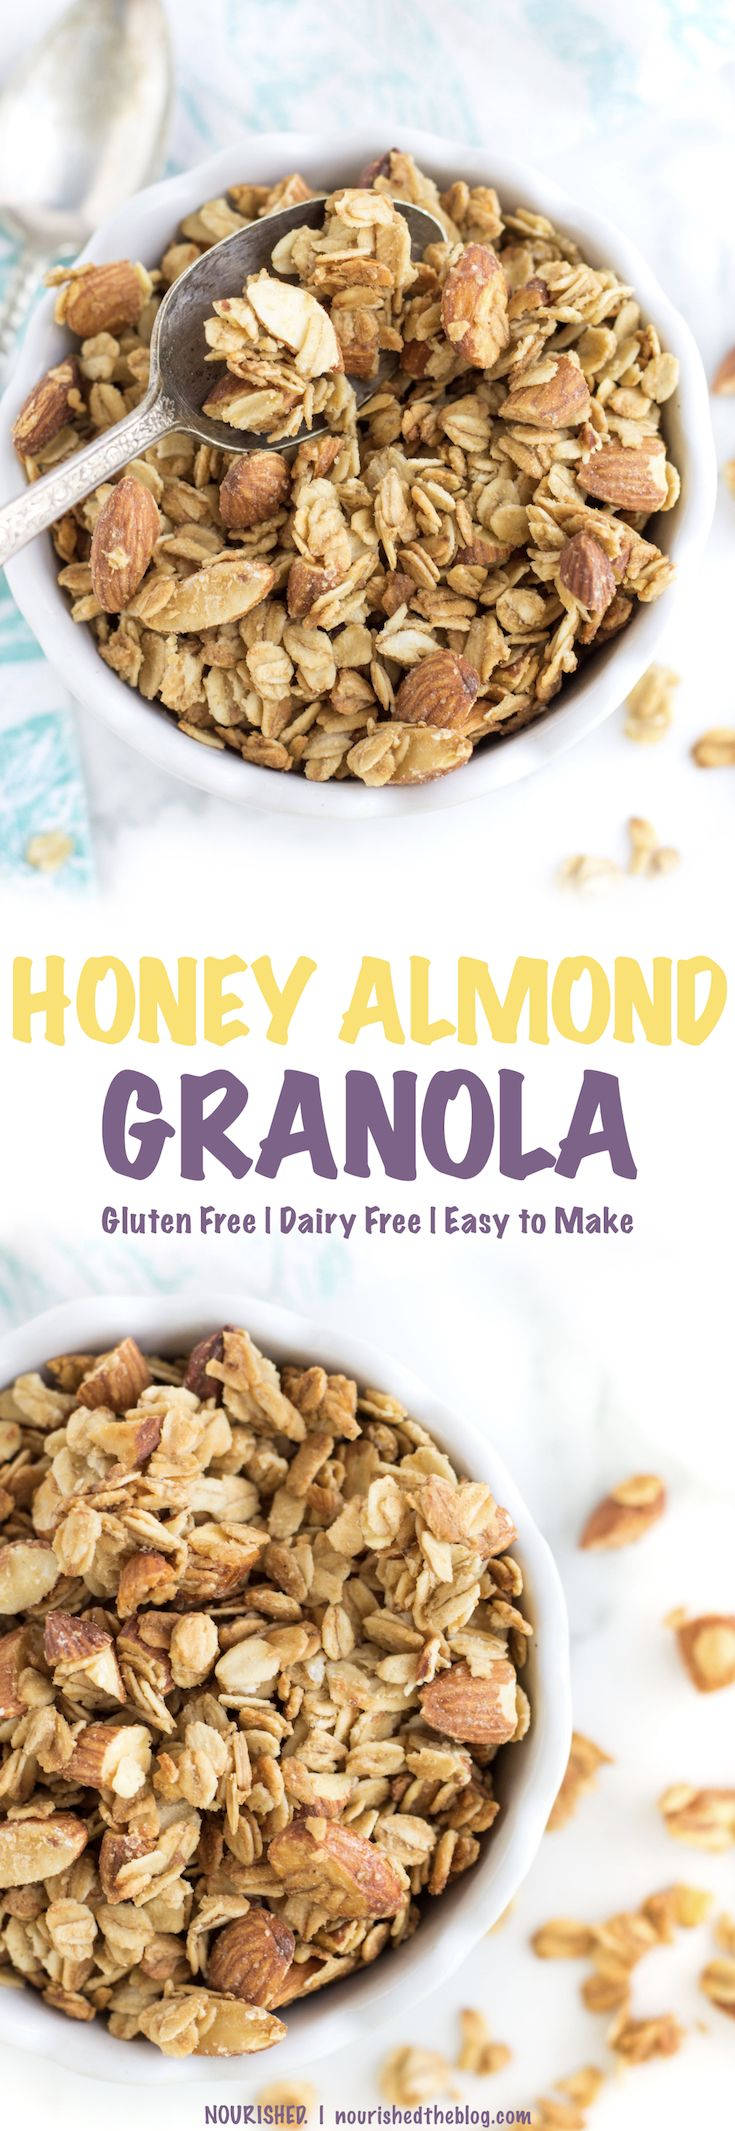 A SIMPLE Honey Almond Granola recipe made gluten free and with only 6 ingredients like toasty oats, crunchy almonds and sweet, sweet honey! This healthy breakfast recipe is a delicious way to start to your day.